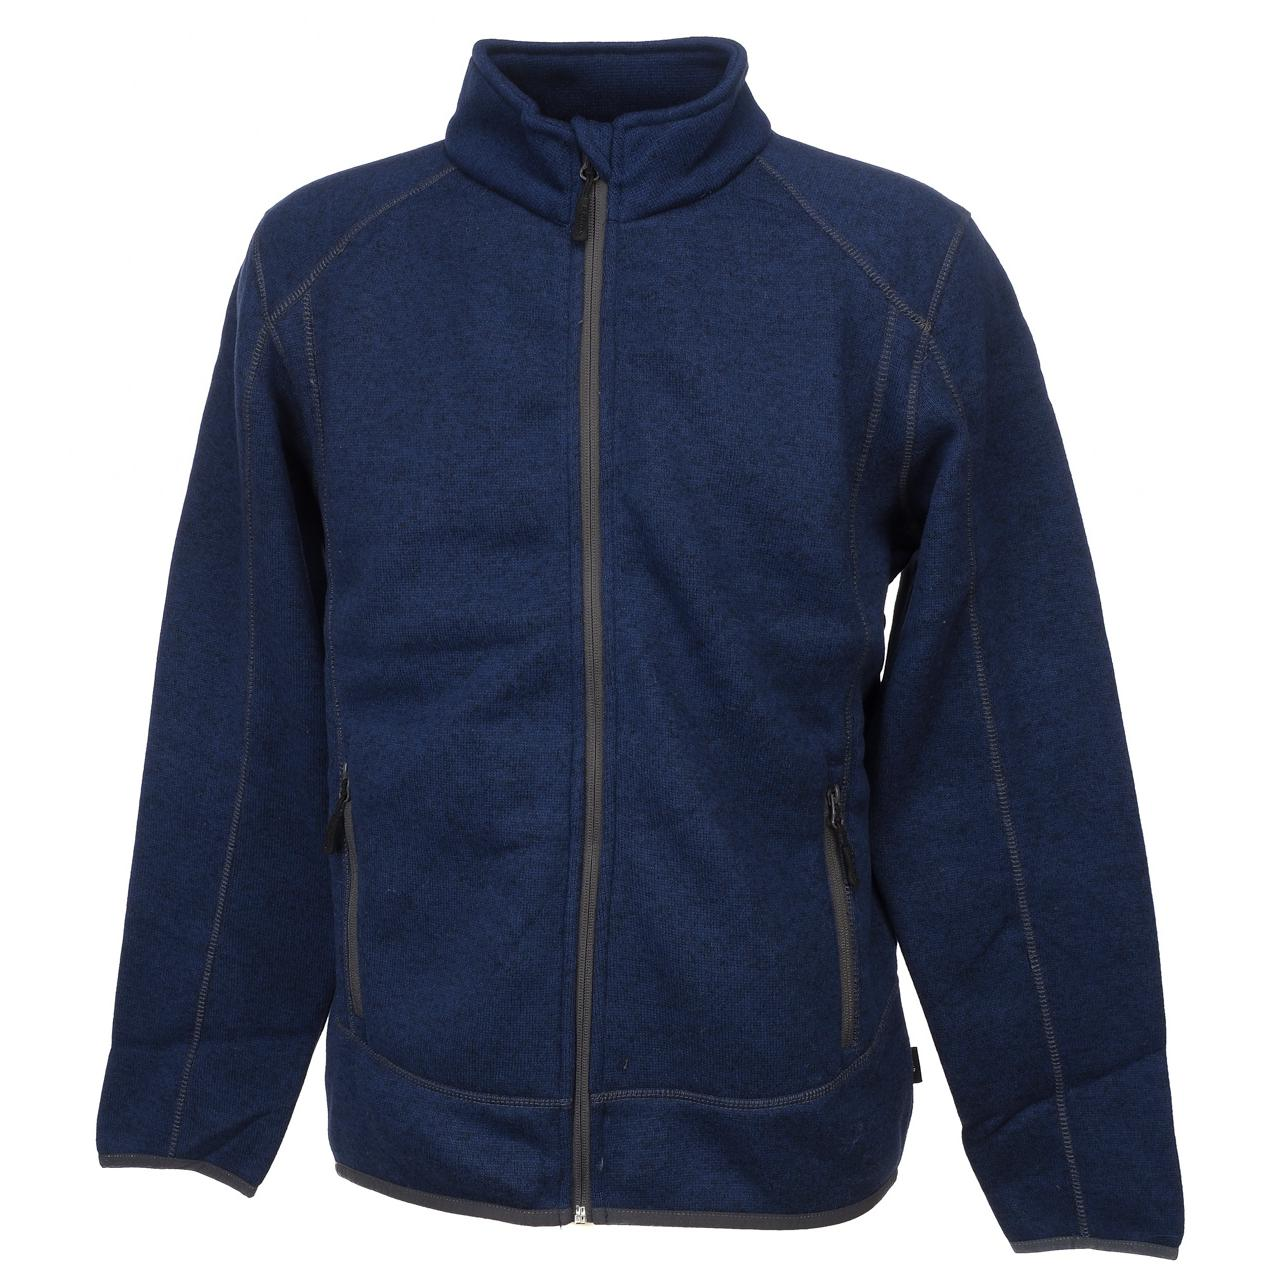 Jackets-Sweaters-Zip-Eldera-Sportswear-Croket-Navy-Ch-Fz-Vest-Blue-59840-New